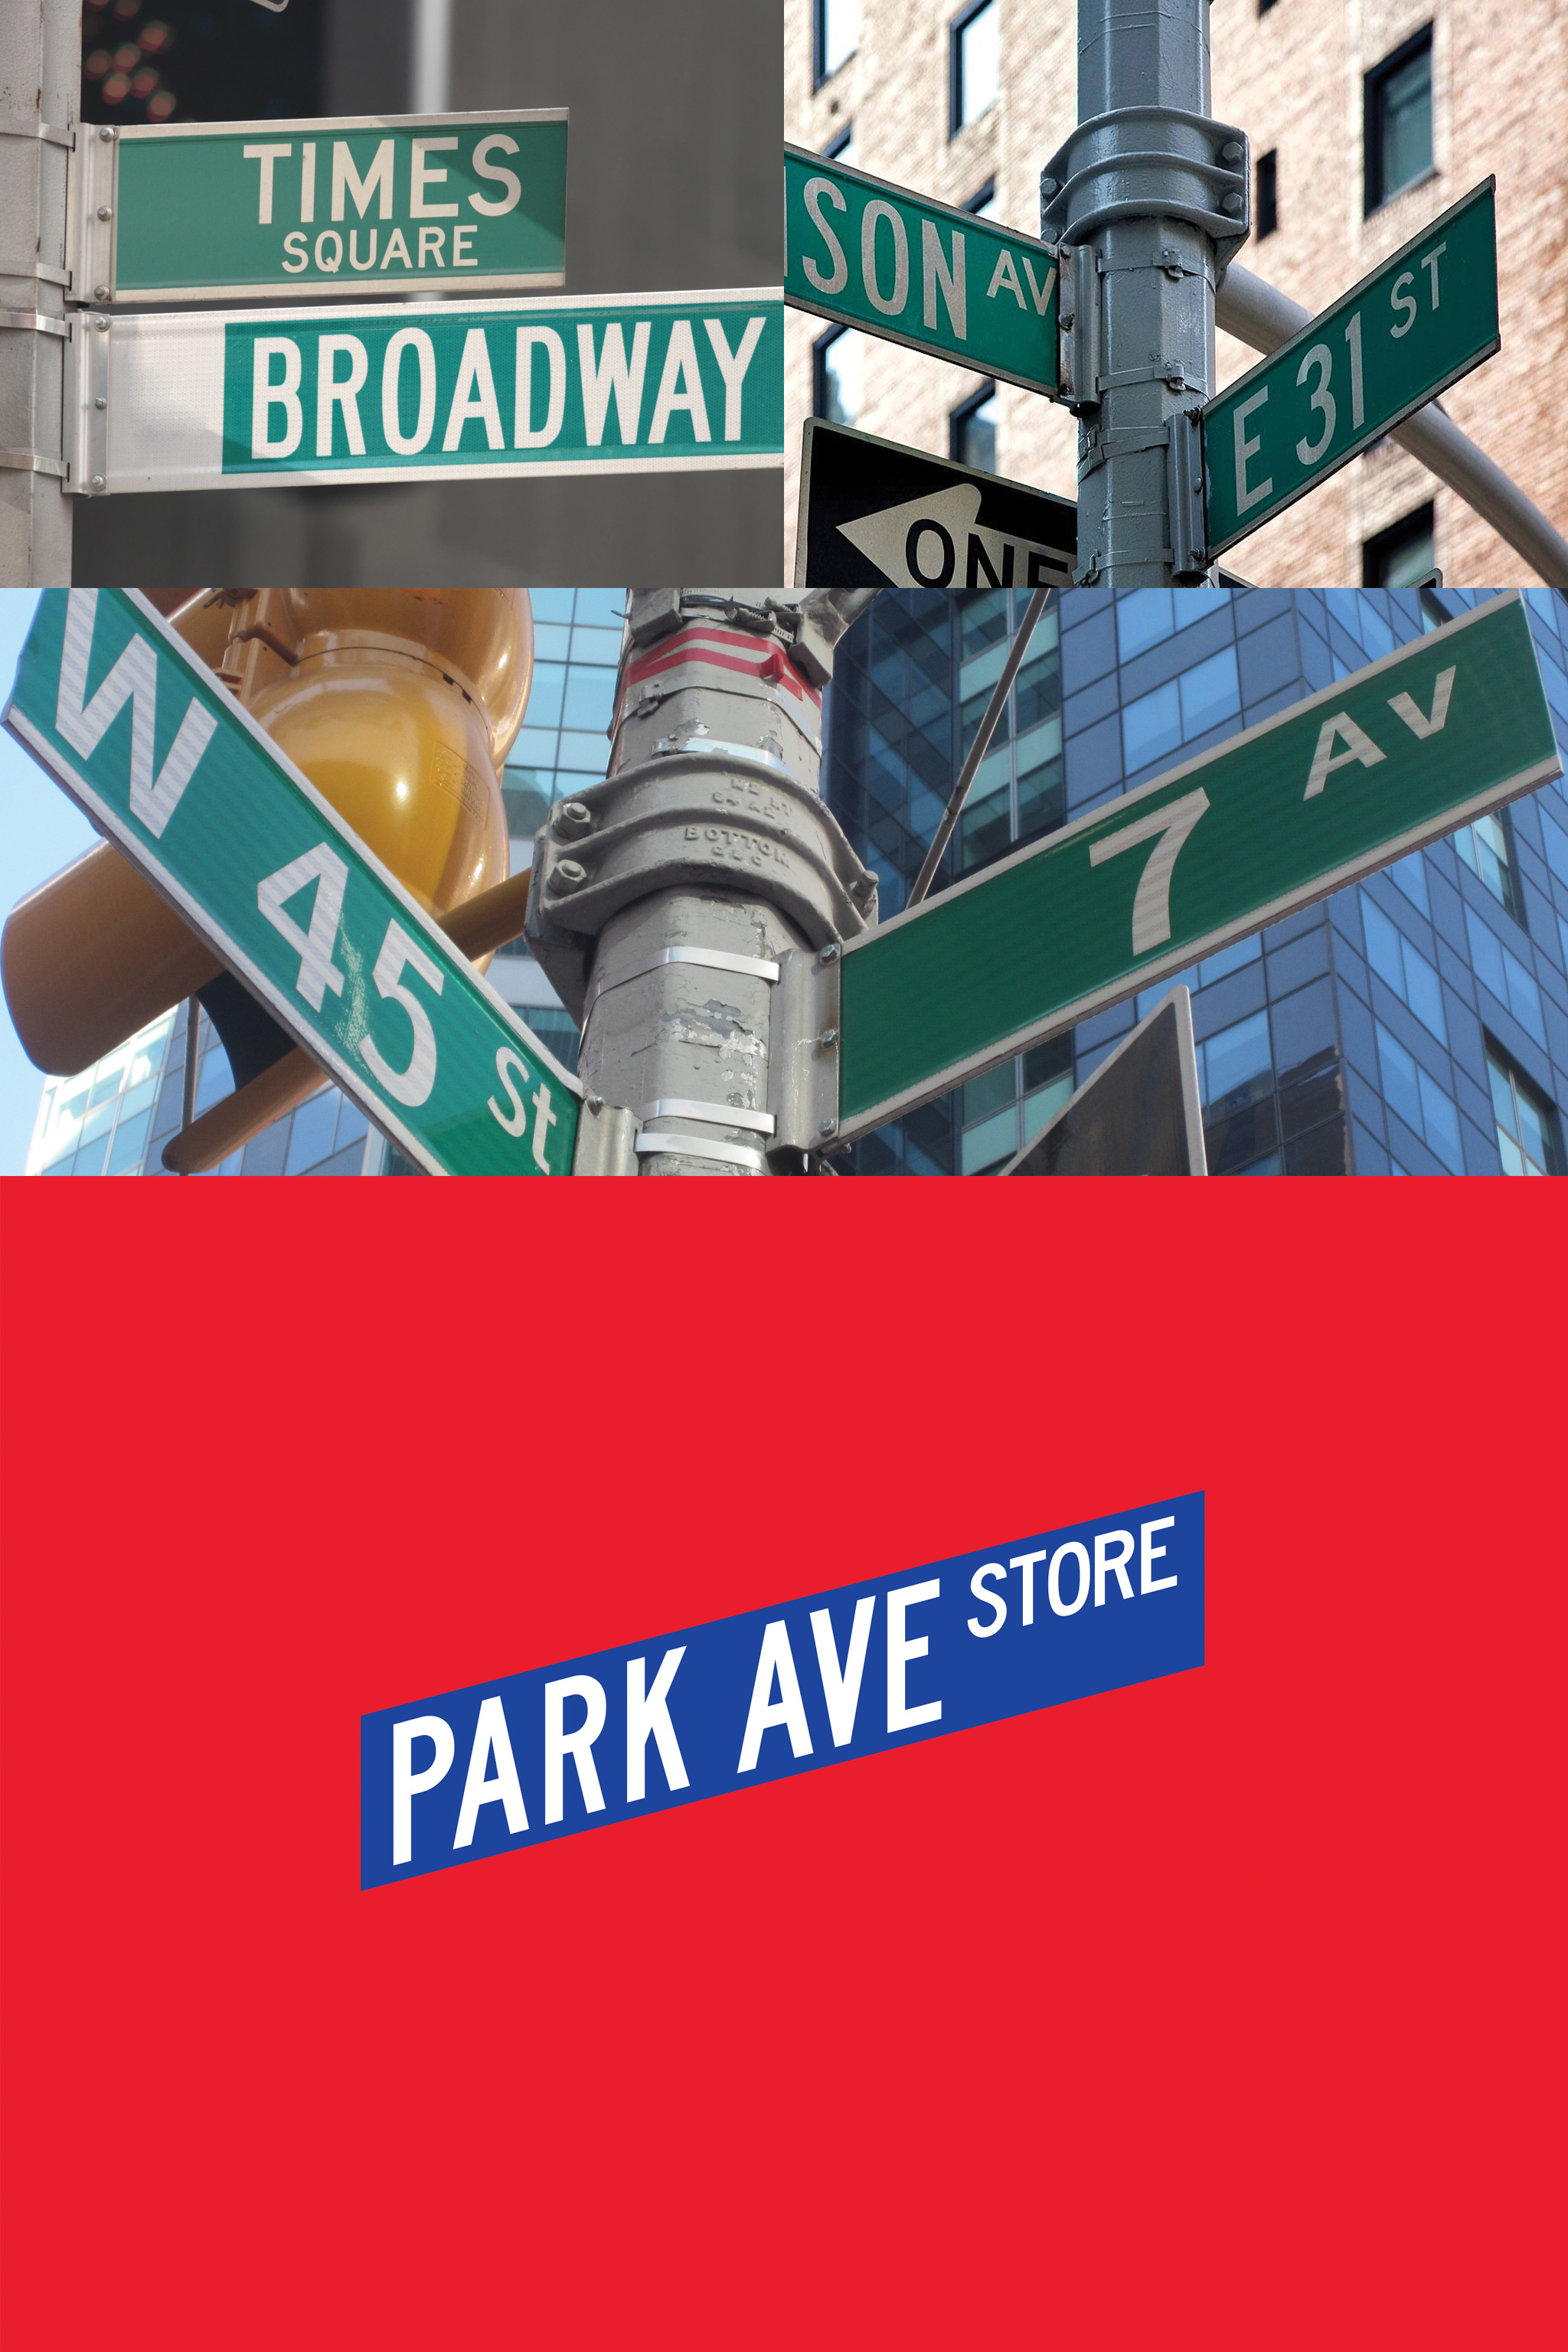 Preamble: only this storein the city sellsfurniture from american brands & top designers